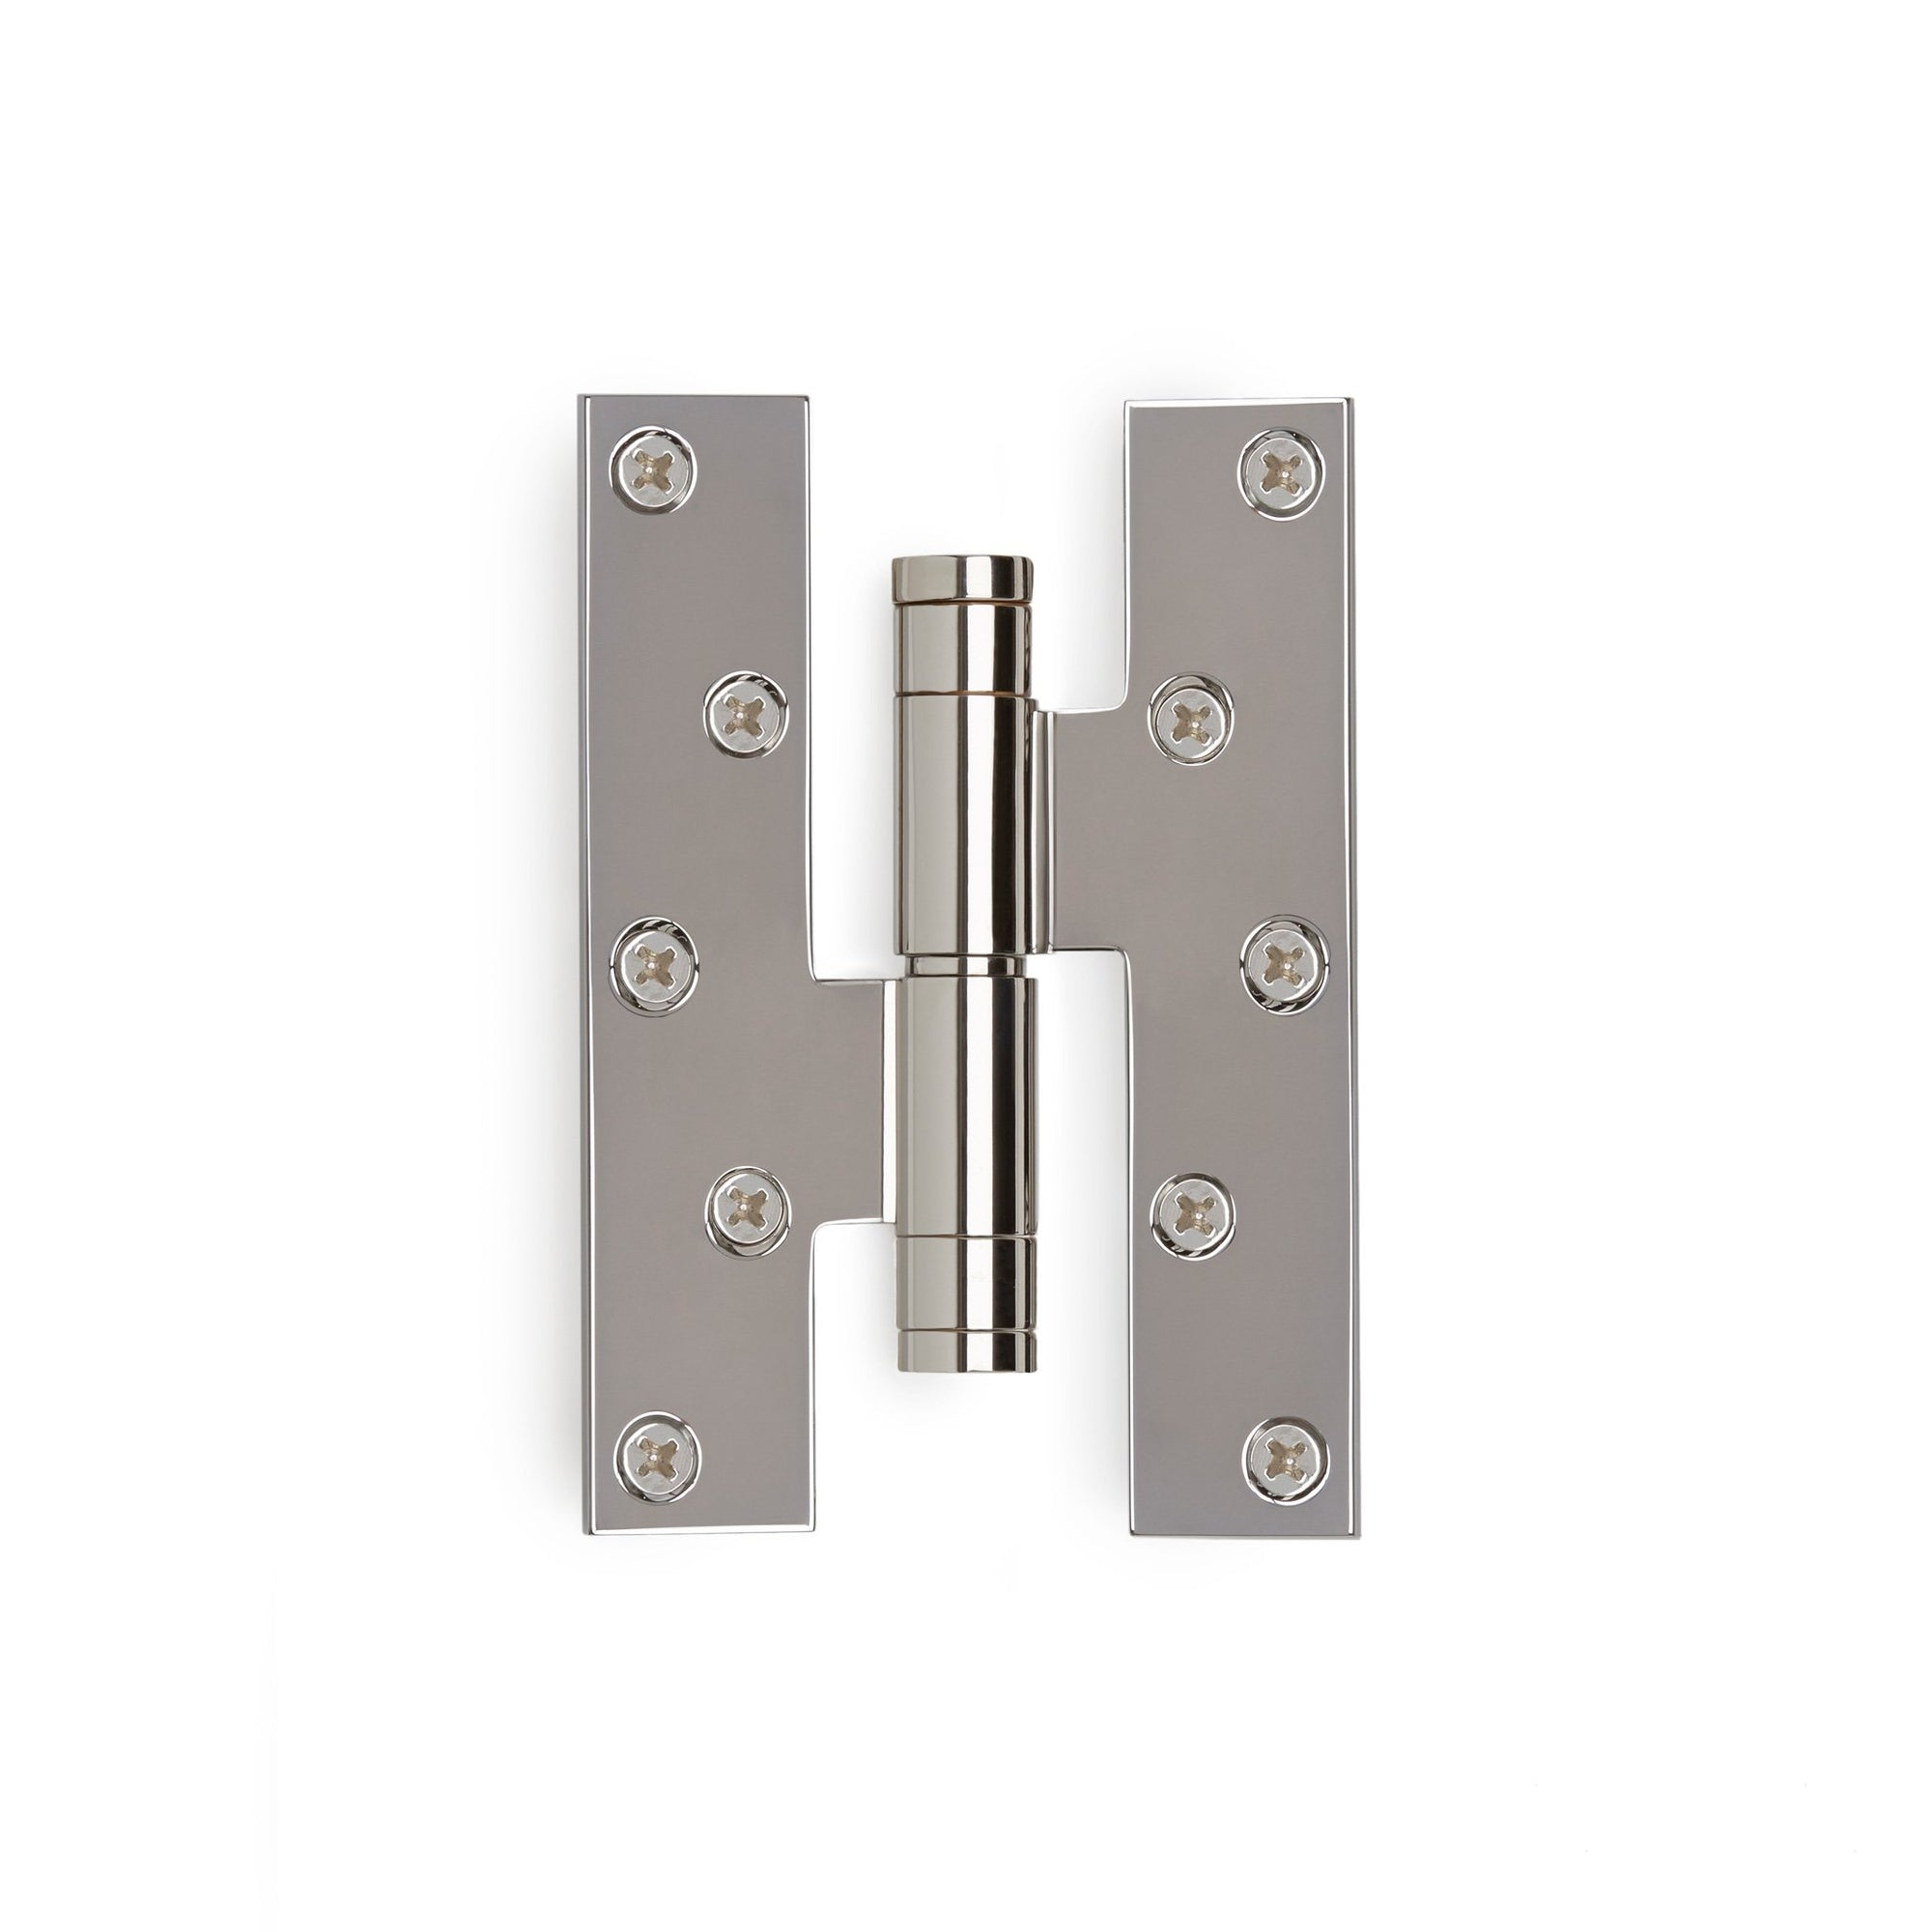 2000-HNGE-HD-ZZ-CP Sherle Wagner International Modern Cylindrical Paumelle Hinge in Polished Chromemetal finish